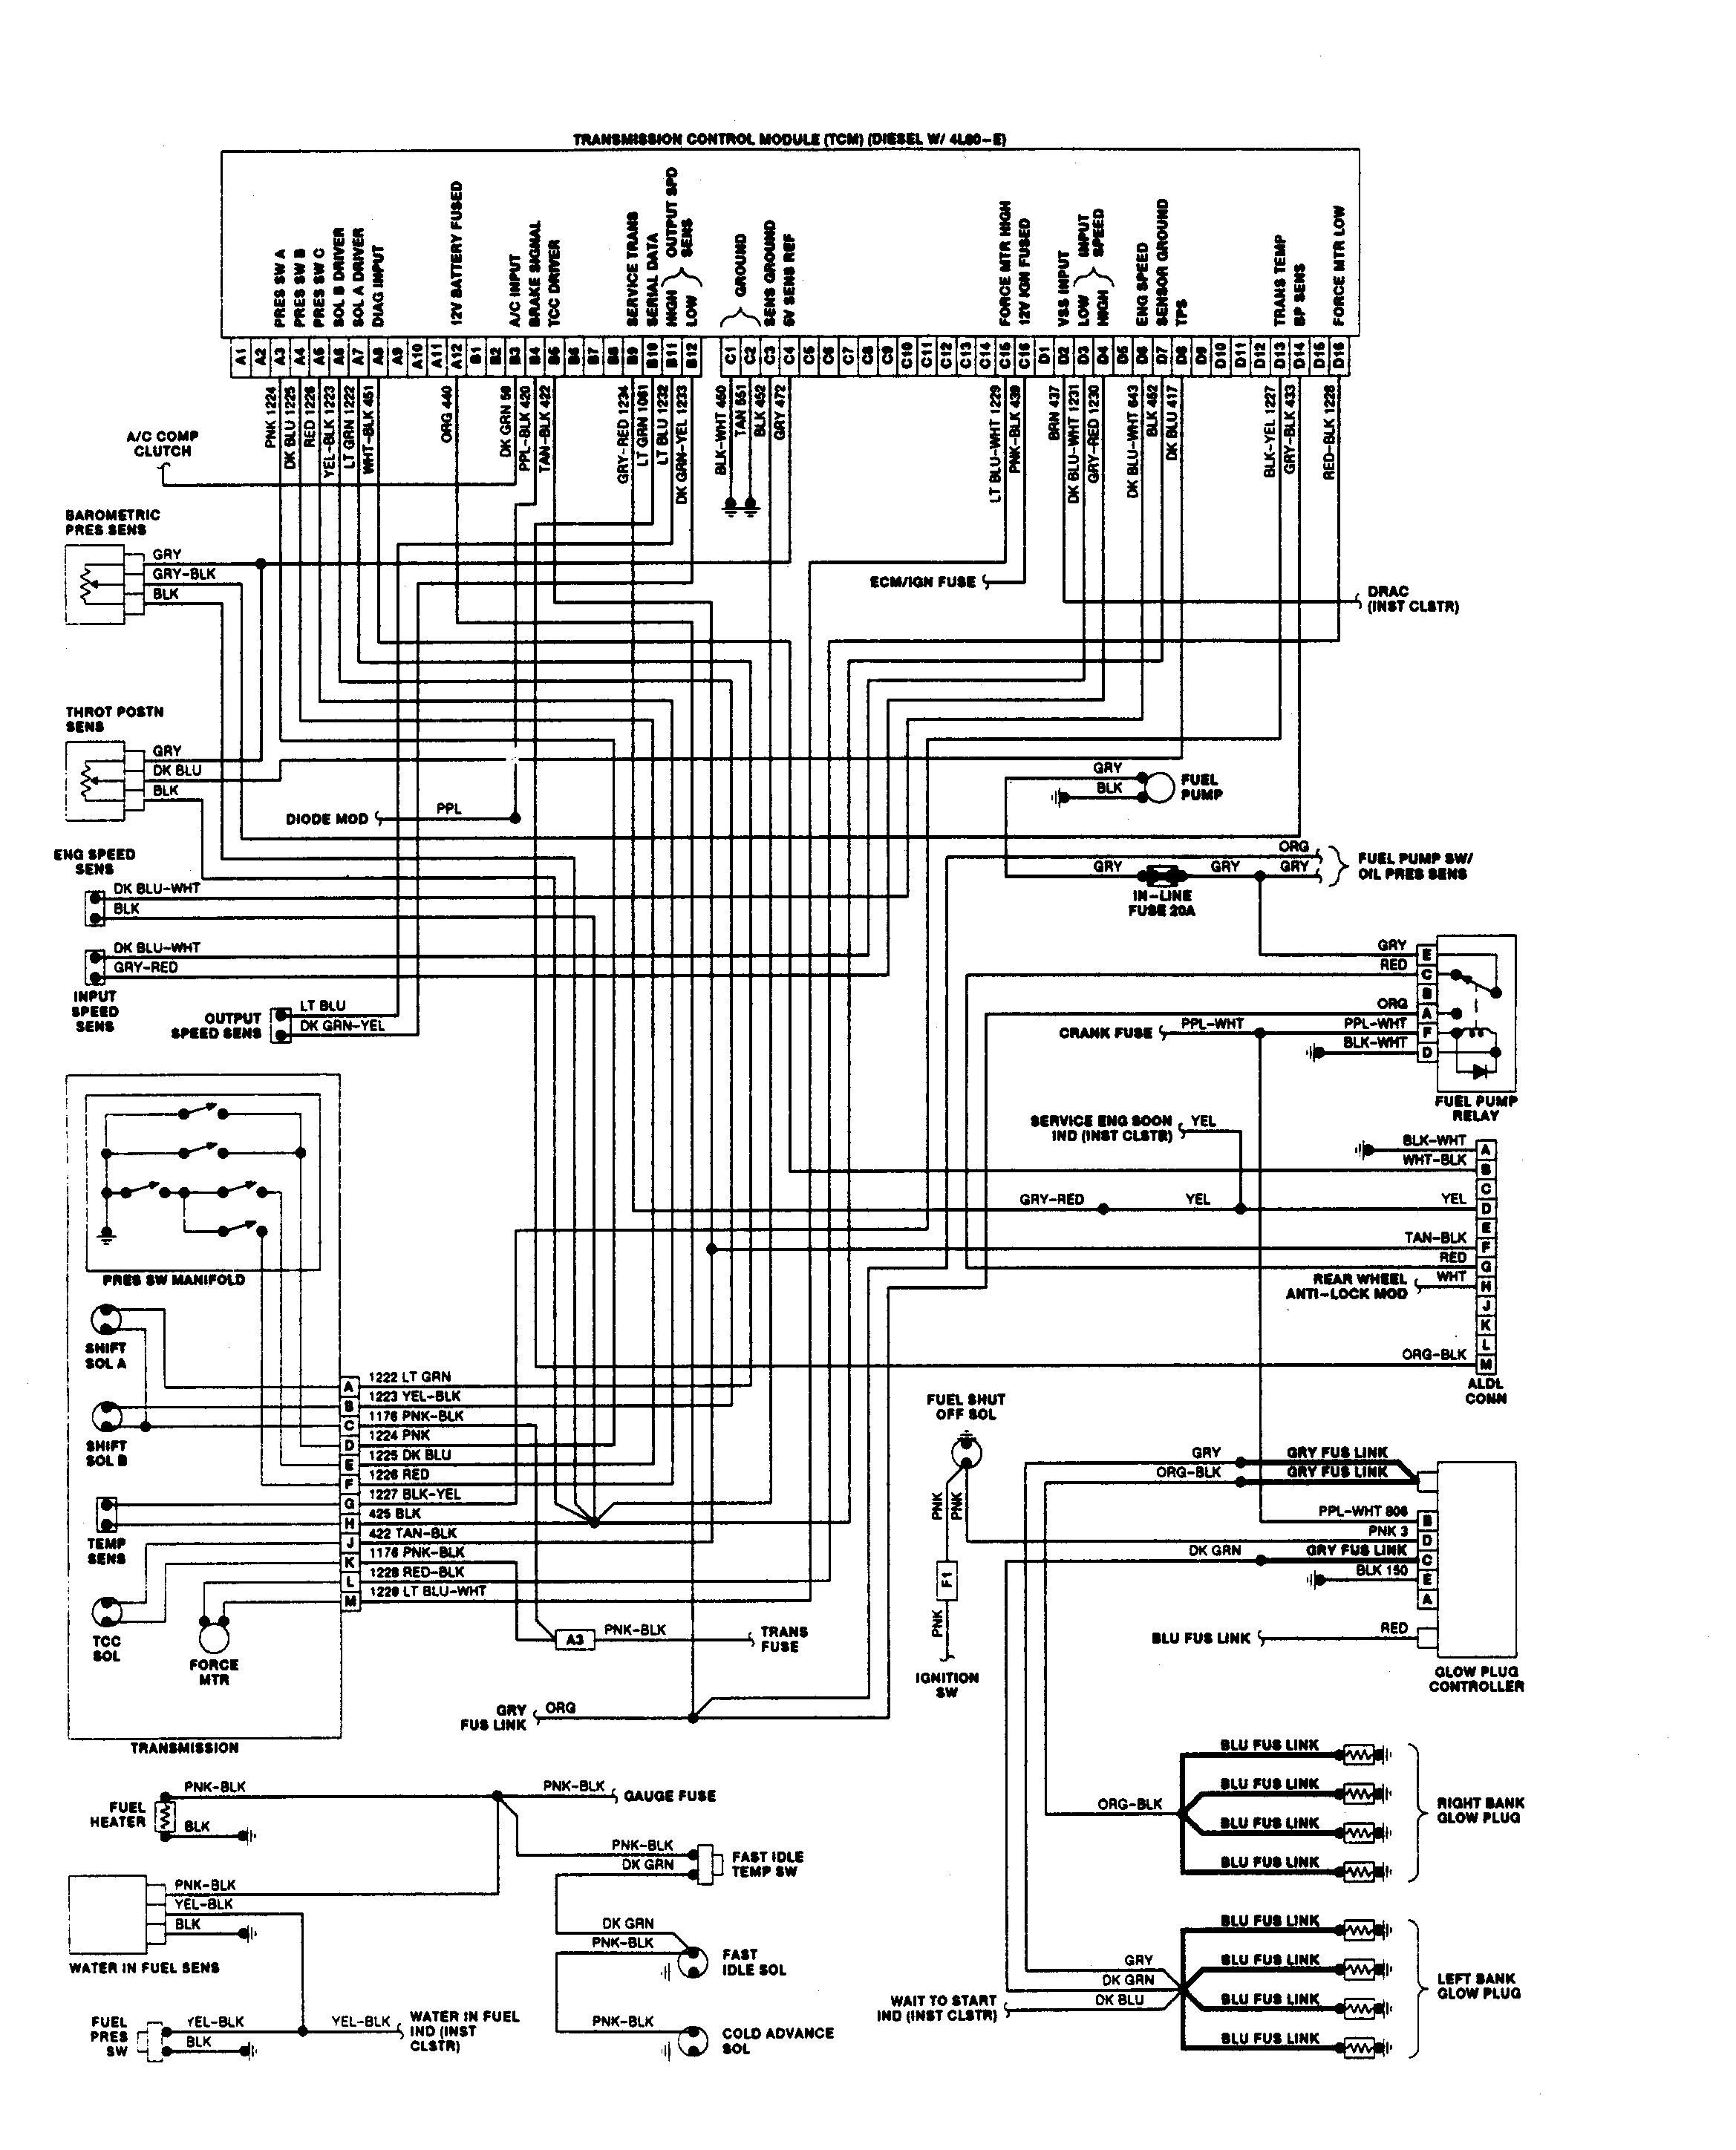 1991 chevy p30 wiring diagrams | wiring diagrams ... 1999 gmc p30 wiring diagram